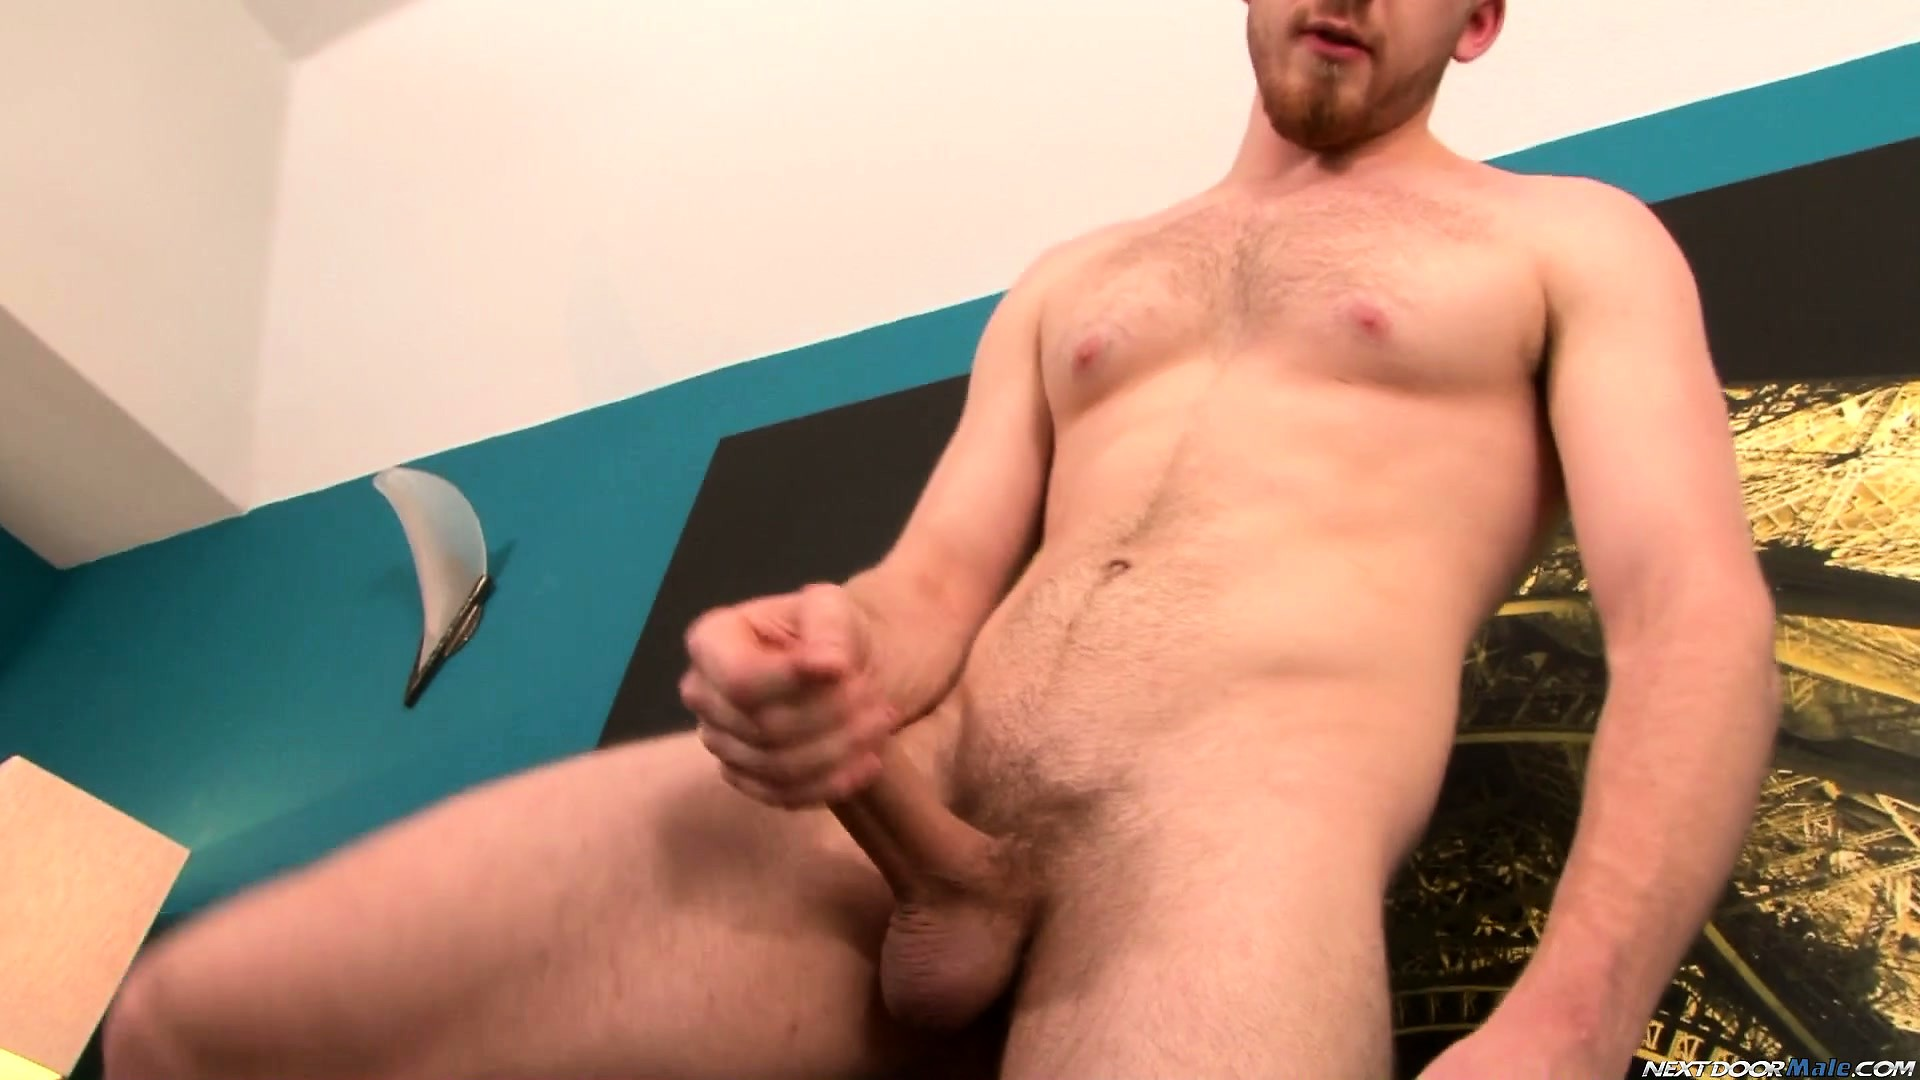 Porno Video of Cody Allen Knows How To Do The Right Thing With His Swollen Manhood